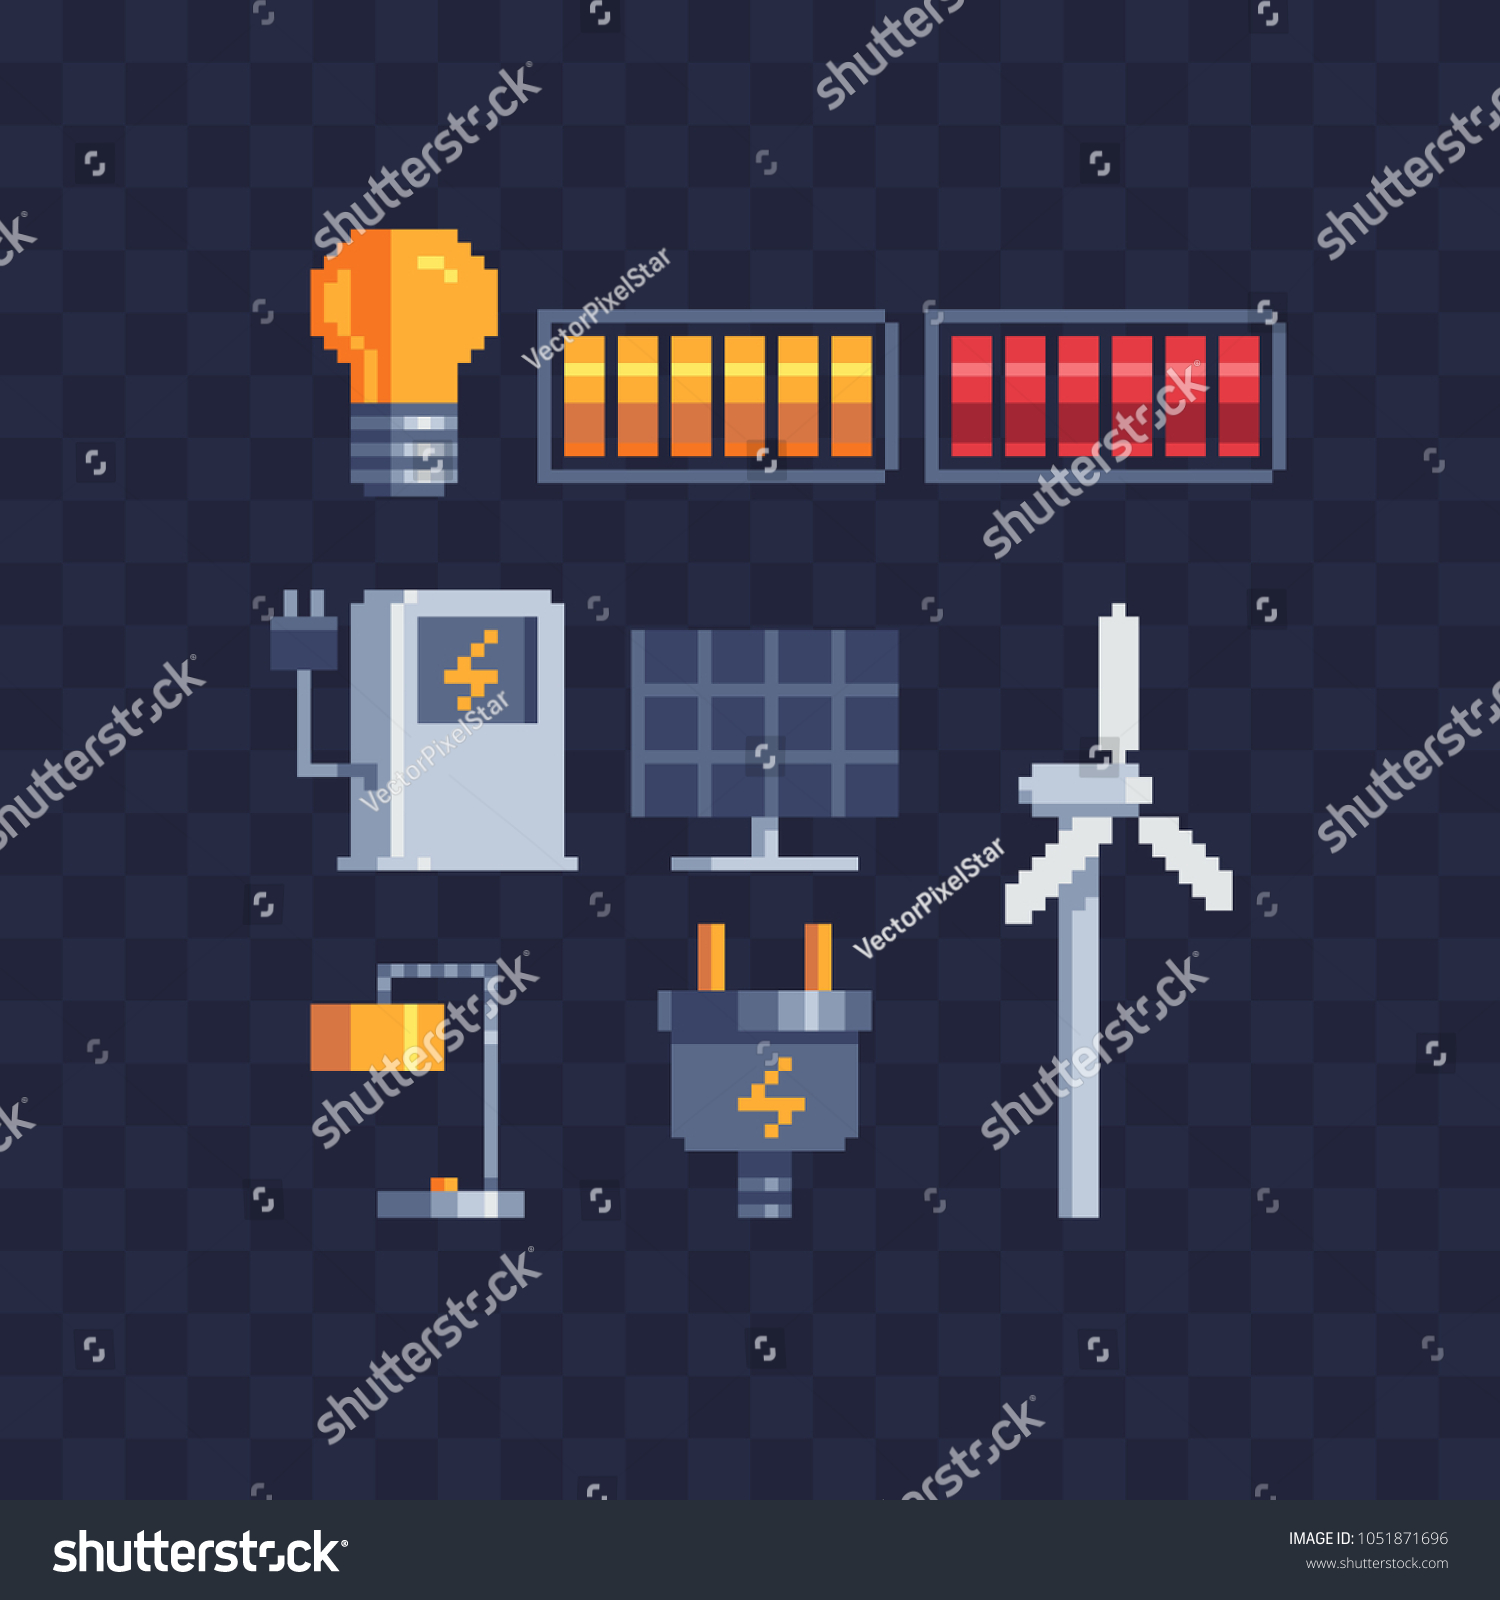 Electricity Energy Symbols Pixel Art Icons Stock Vector Royalty Wiring Diagram Battery Symbol Further Light Bulb Circuit Ources Of Clean Renewable Sun Charging Stations And Windmills